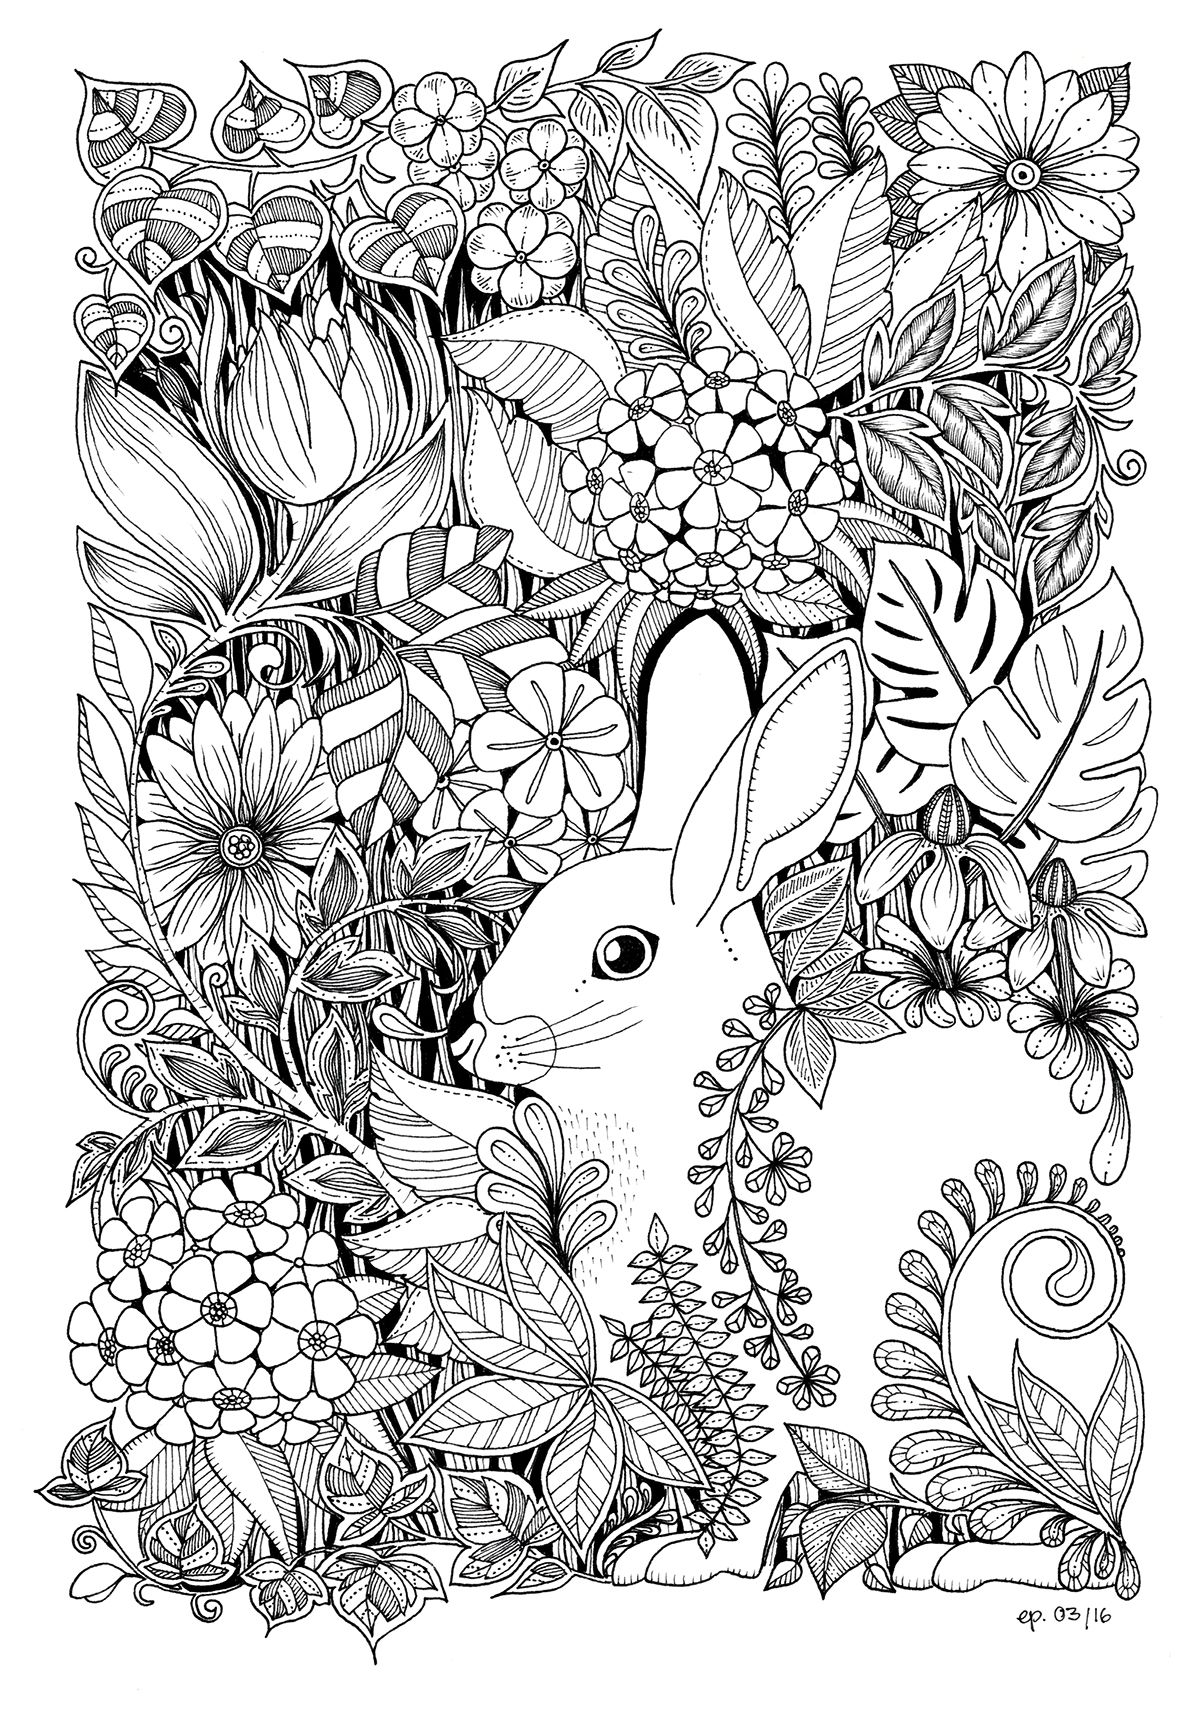 Easter Bunny on Behance Easter bunny, Blank coloring pages